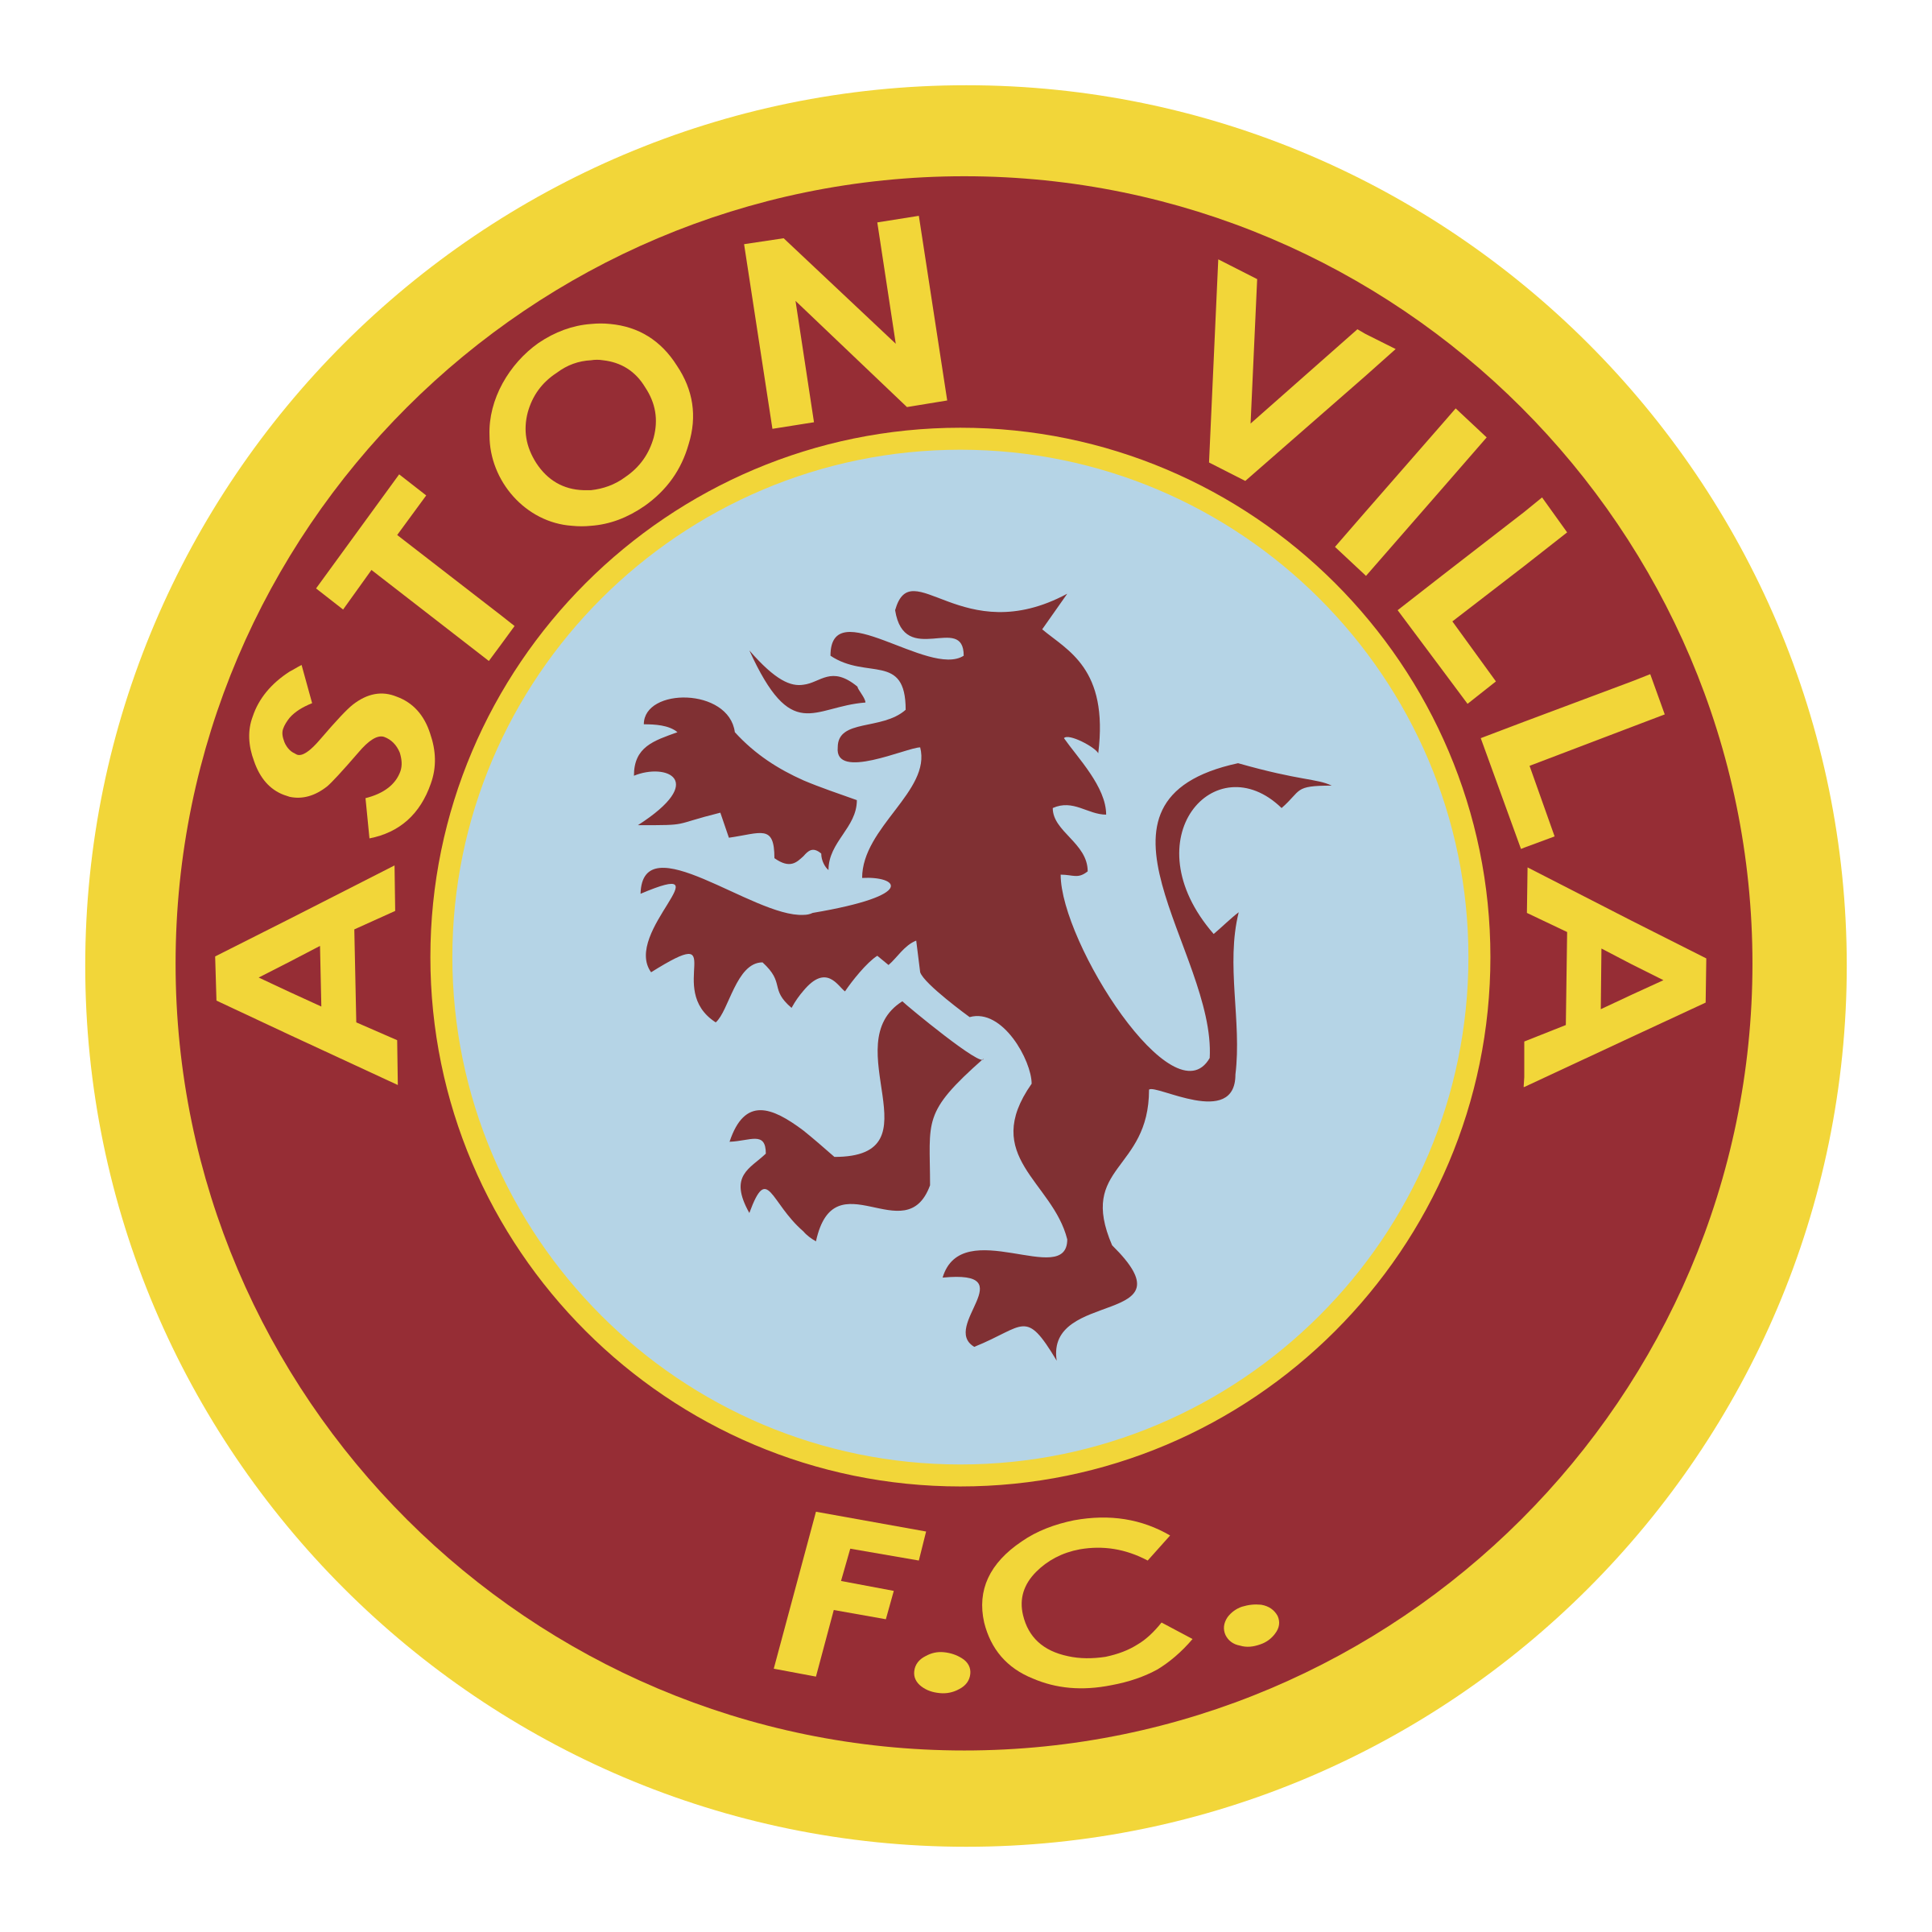 Aston Villa FC Logo PNG Transparent & SVG Vector - Freebie ...